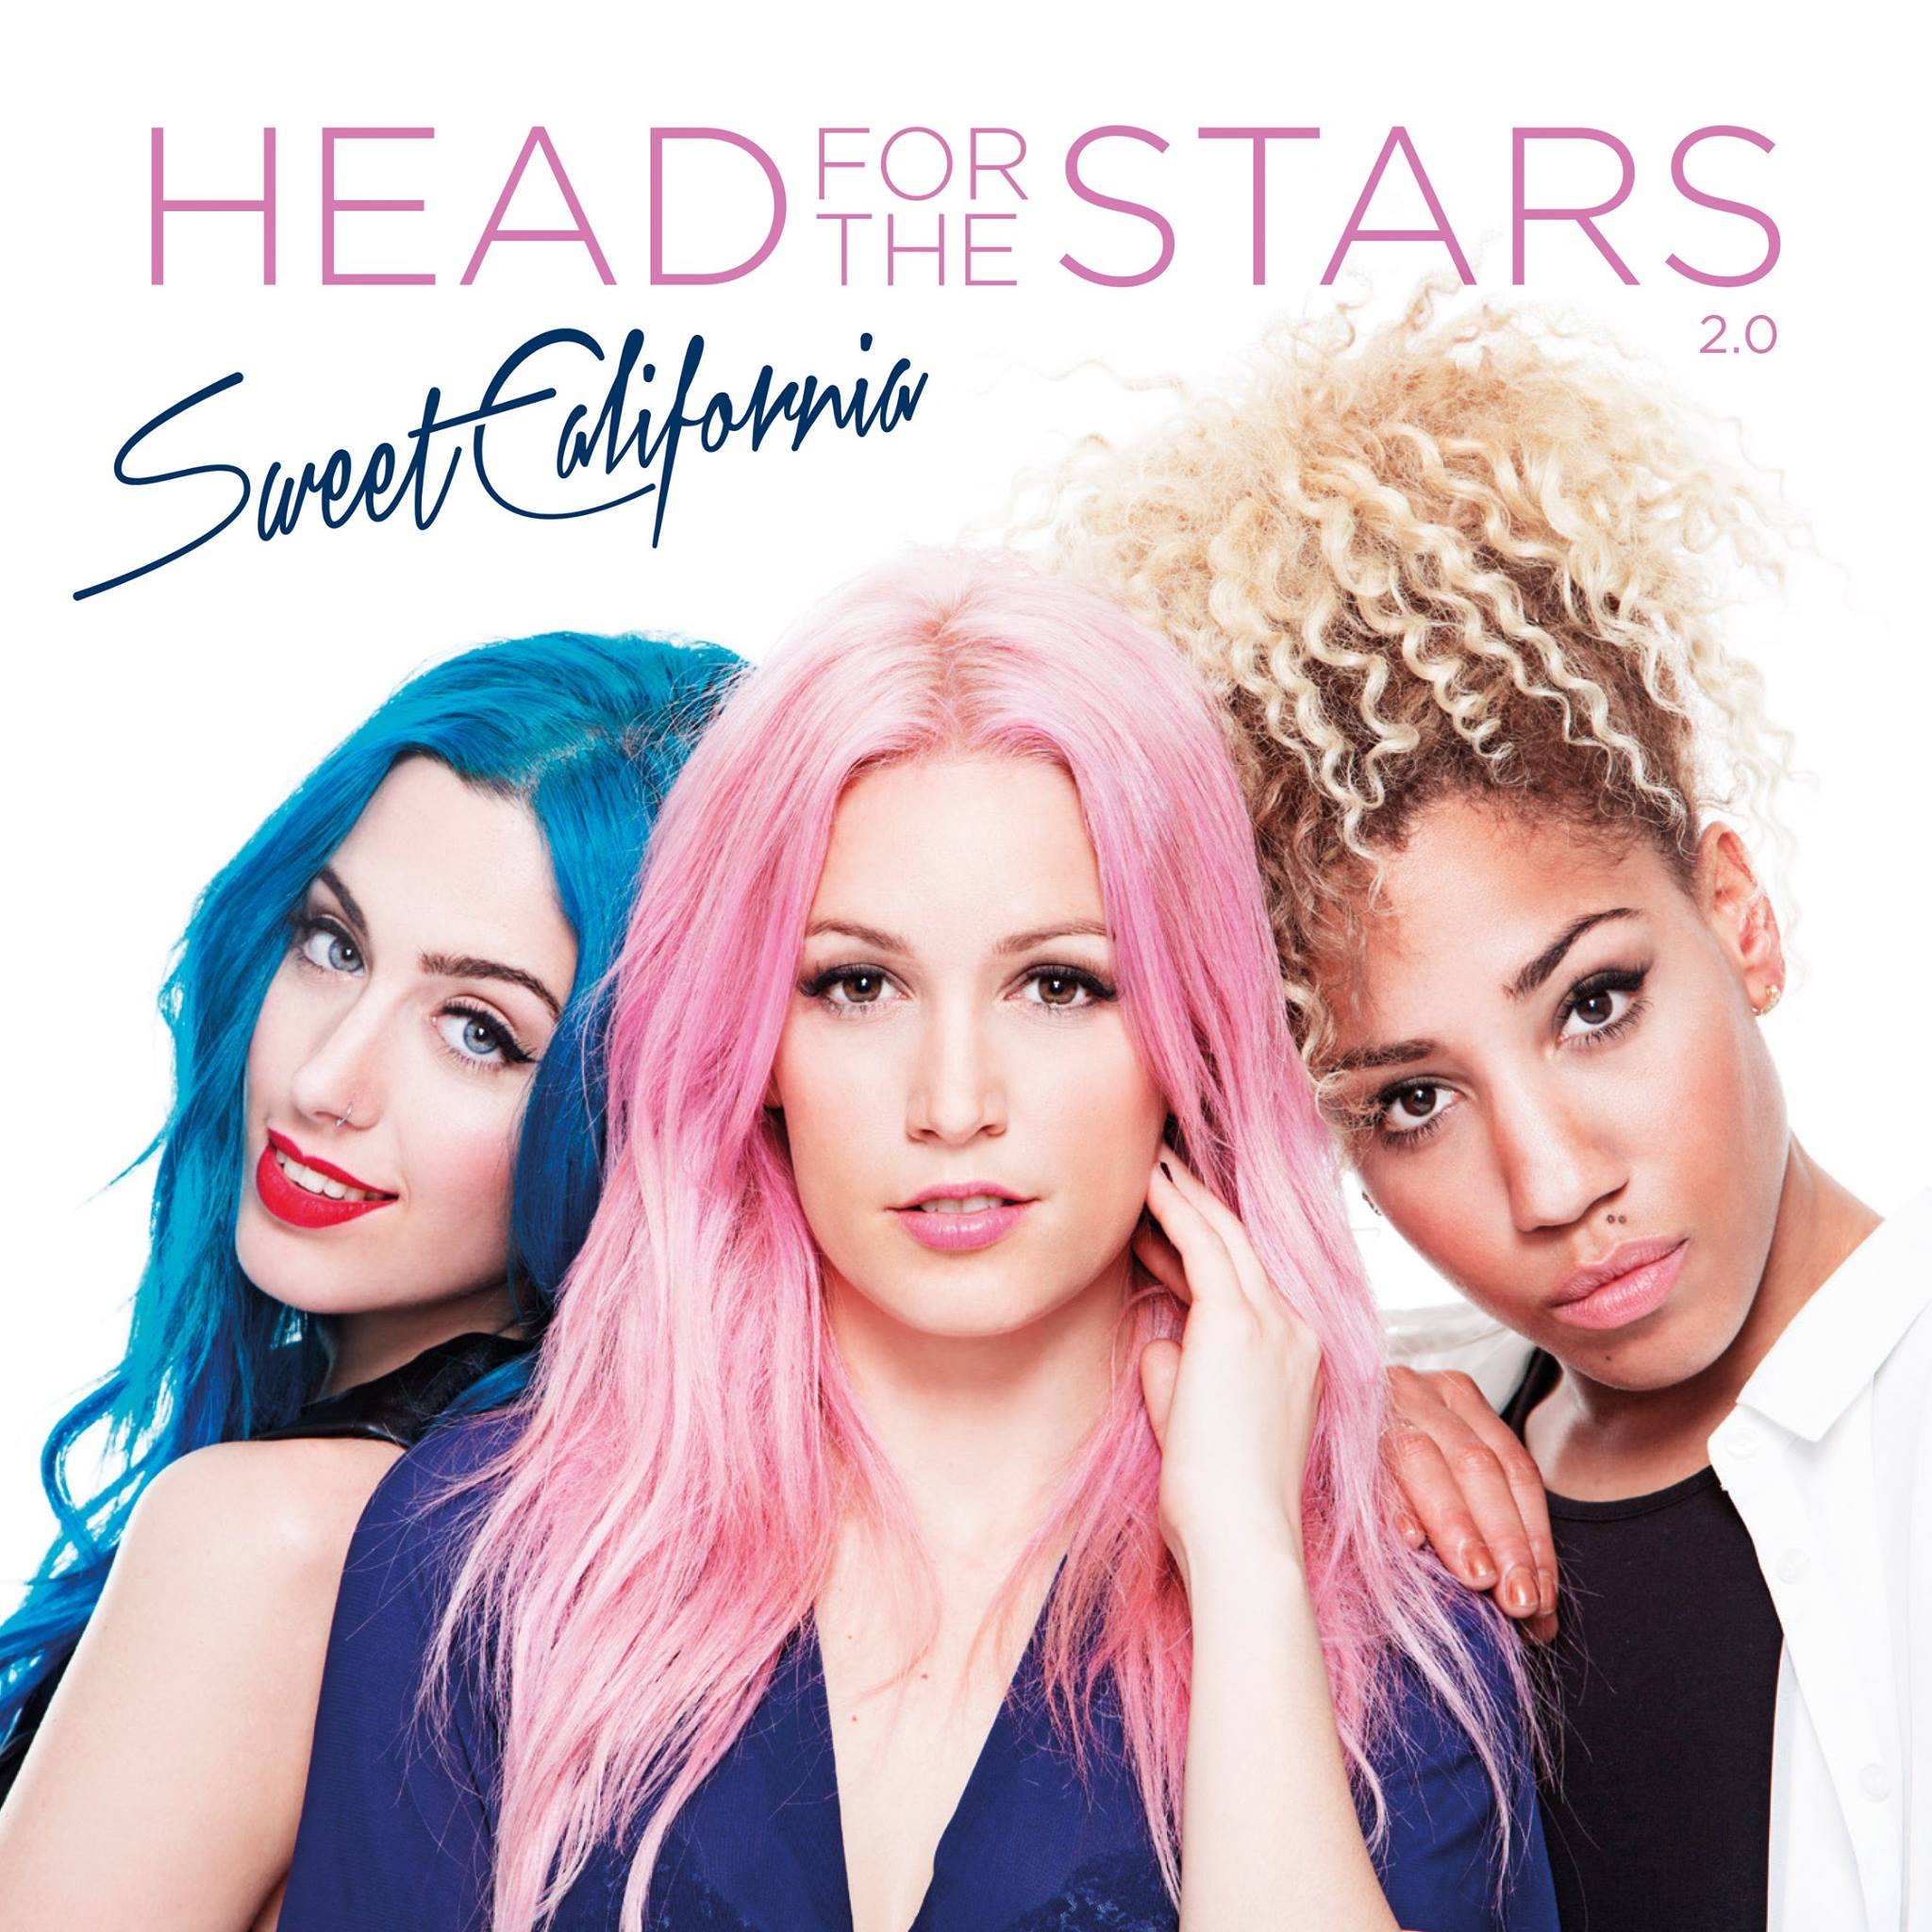 Head for the stars 2.0